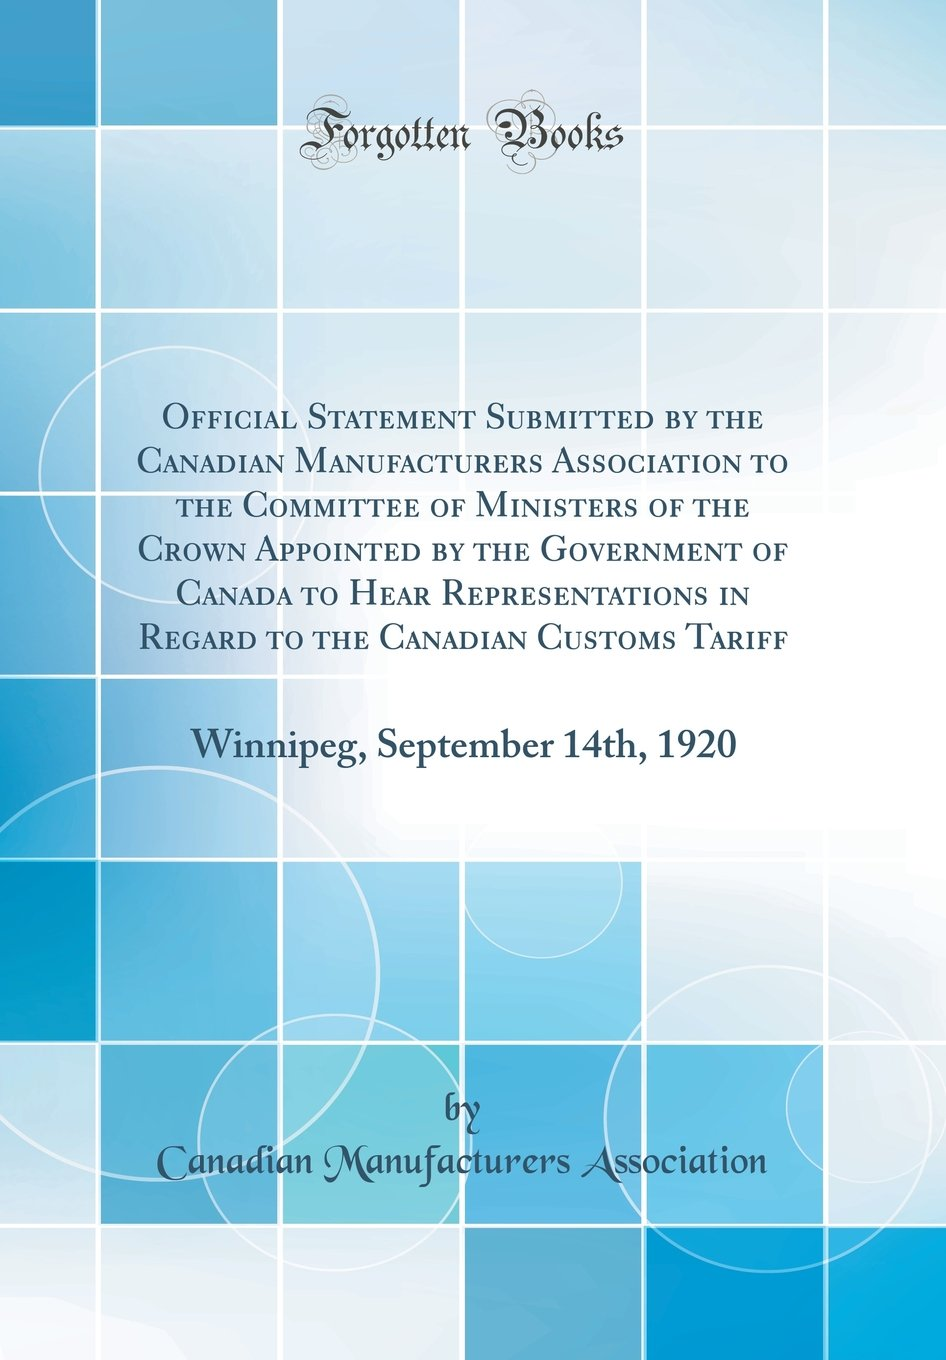 Read Online Official Statement Submitted by the Canadian Manufacturers Association to the Committee of Ministers of the Crown Appointed by the Government of ... Tariff: Winnipeg, September 14th, 1920 ebook